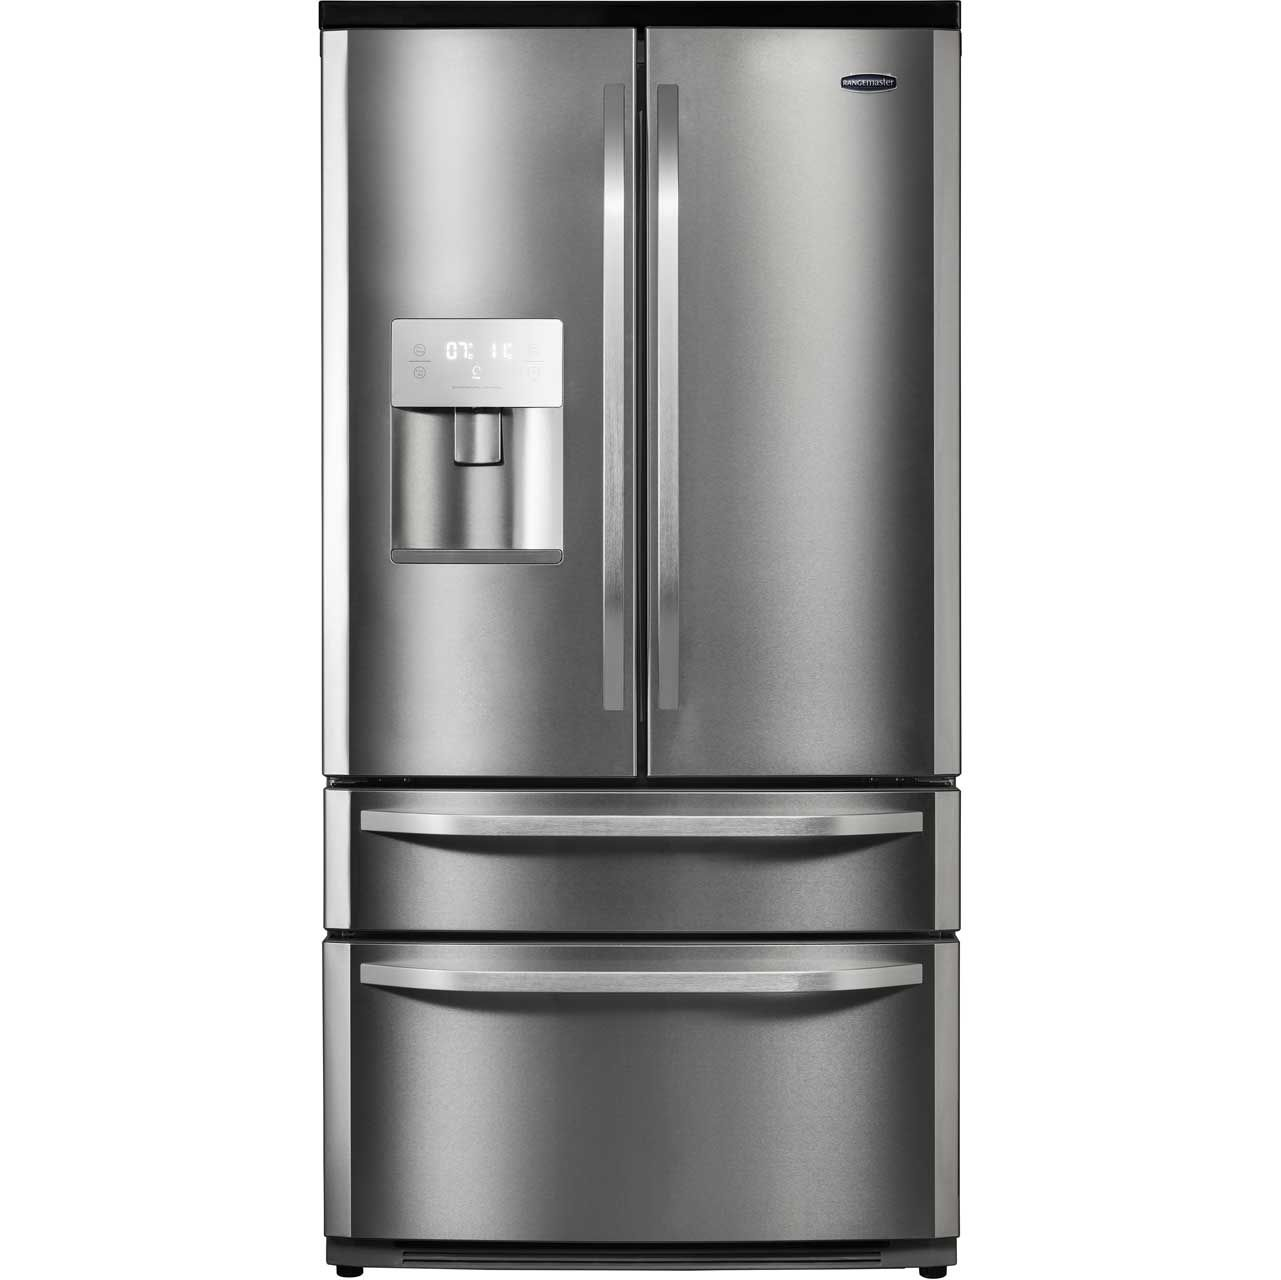 Uberlegen Rangemaster DXD RDXD15SS/C American Fridge Freezer   Stainless Steel /  Chrome